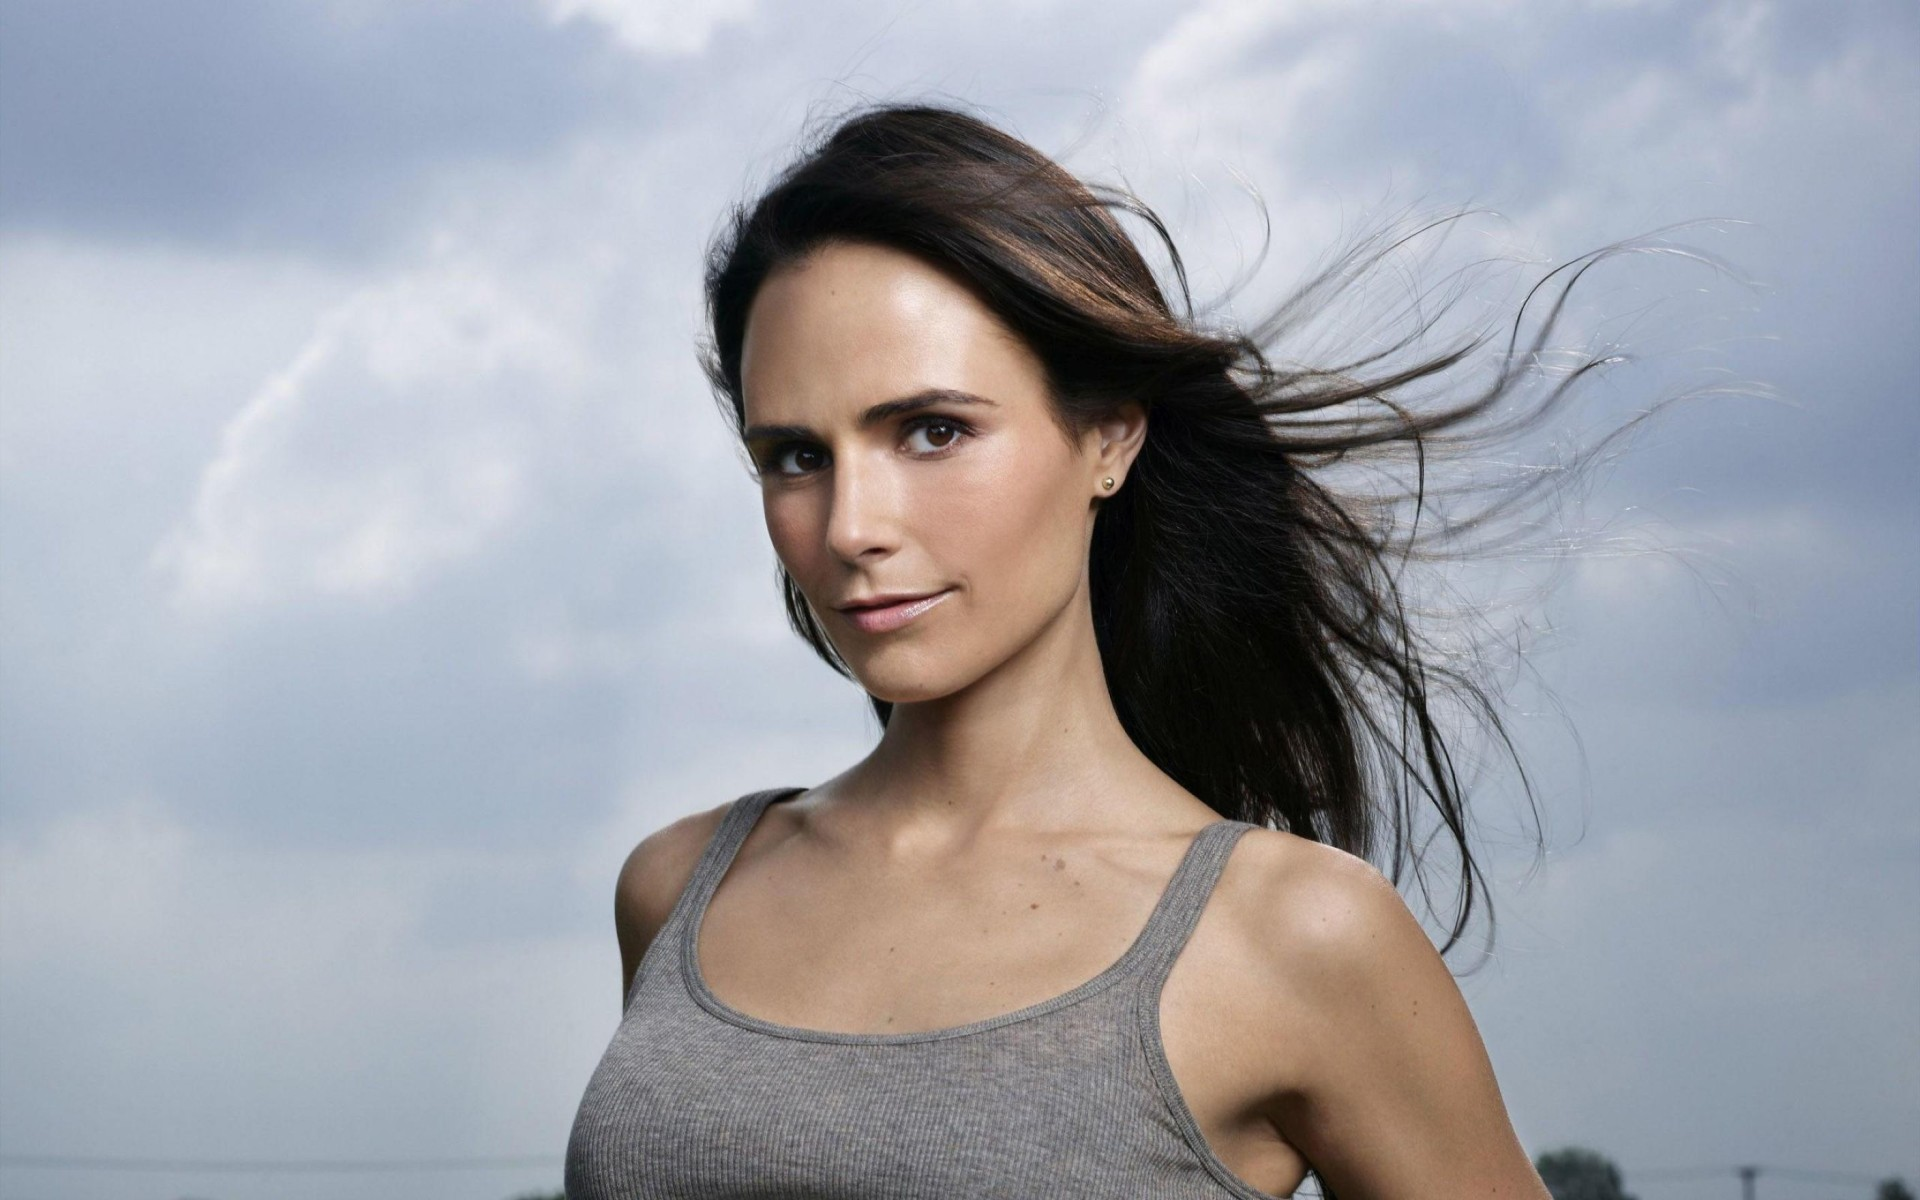 Jordana Brewster With Her Hair In The Wind Wallpaper